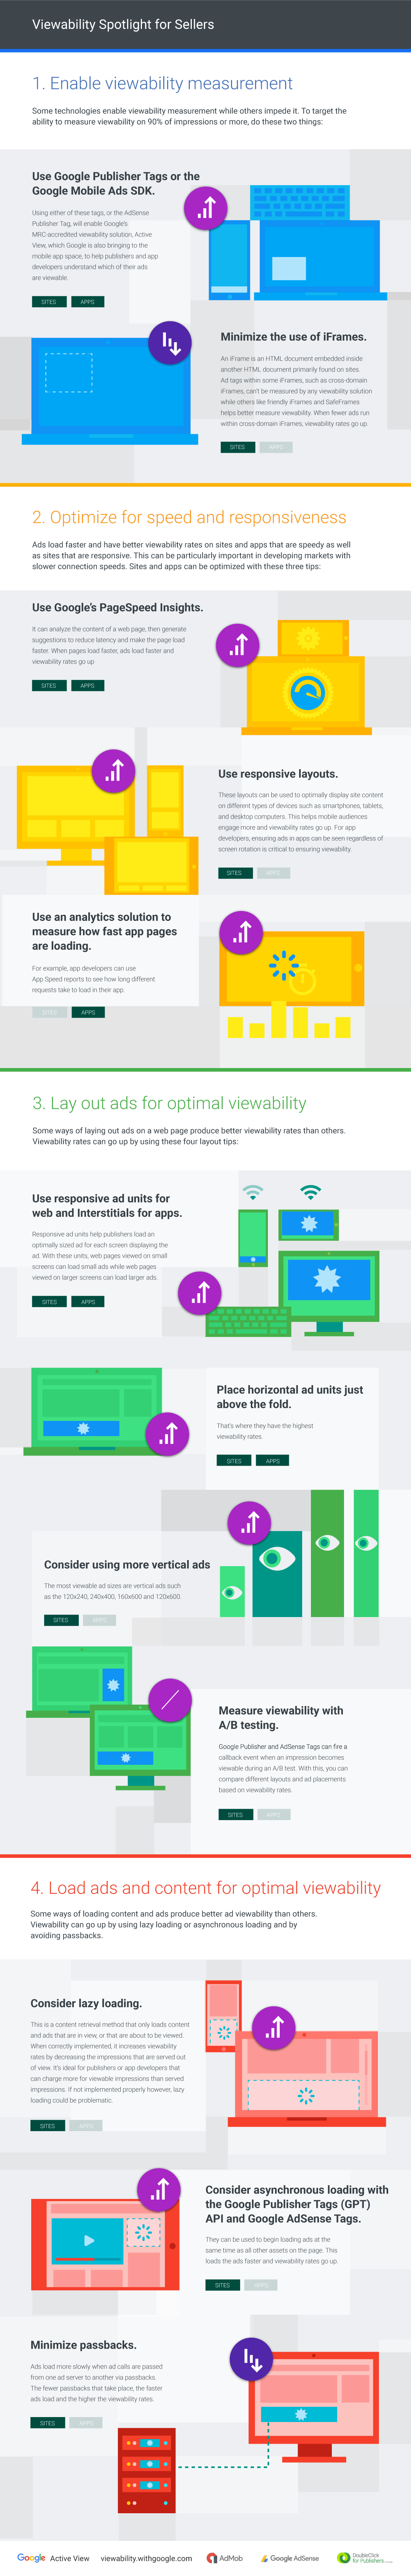 Viewability Spotlight for Sellers: Two tips to enable viewability measurement